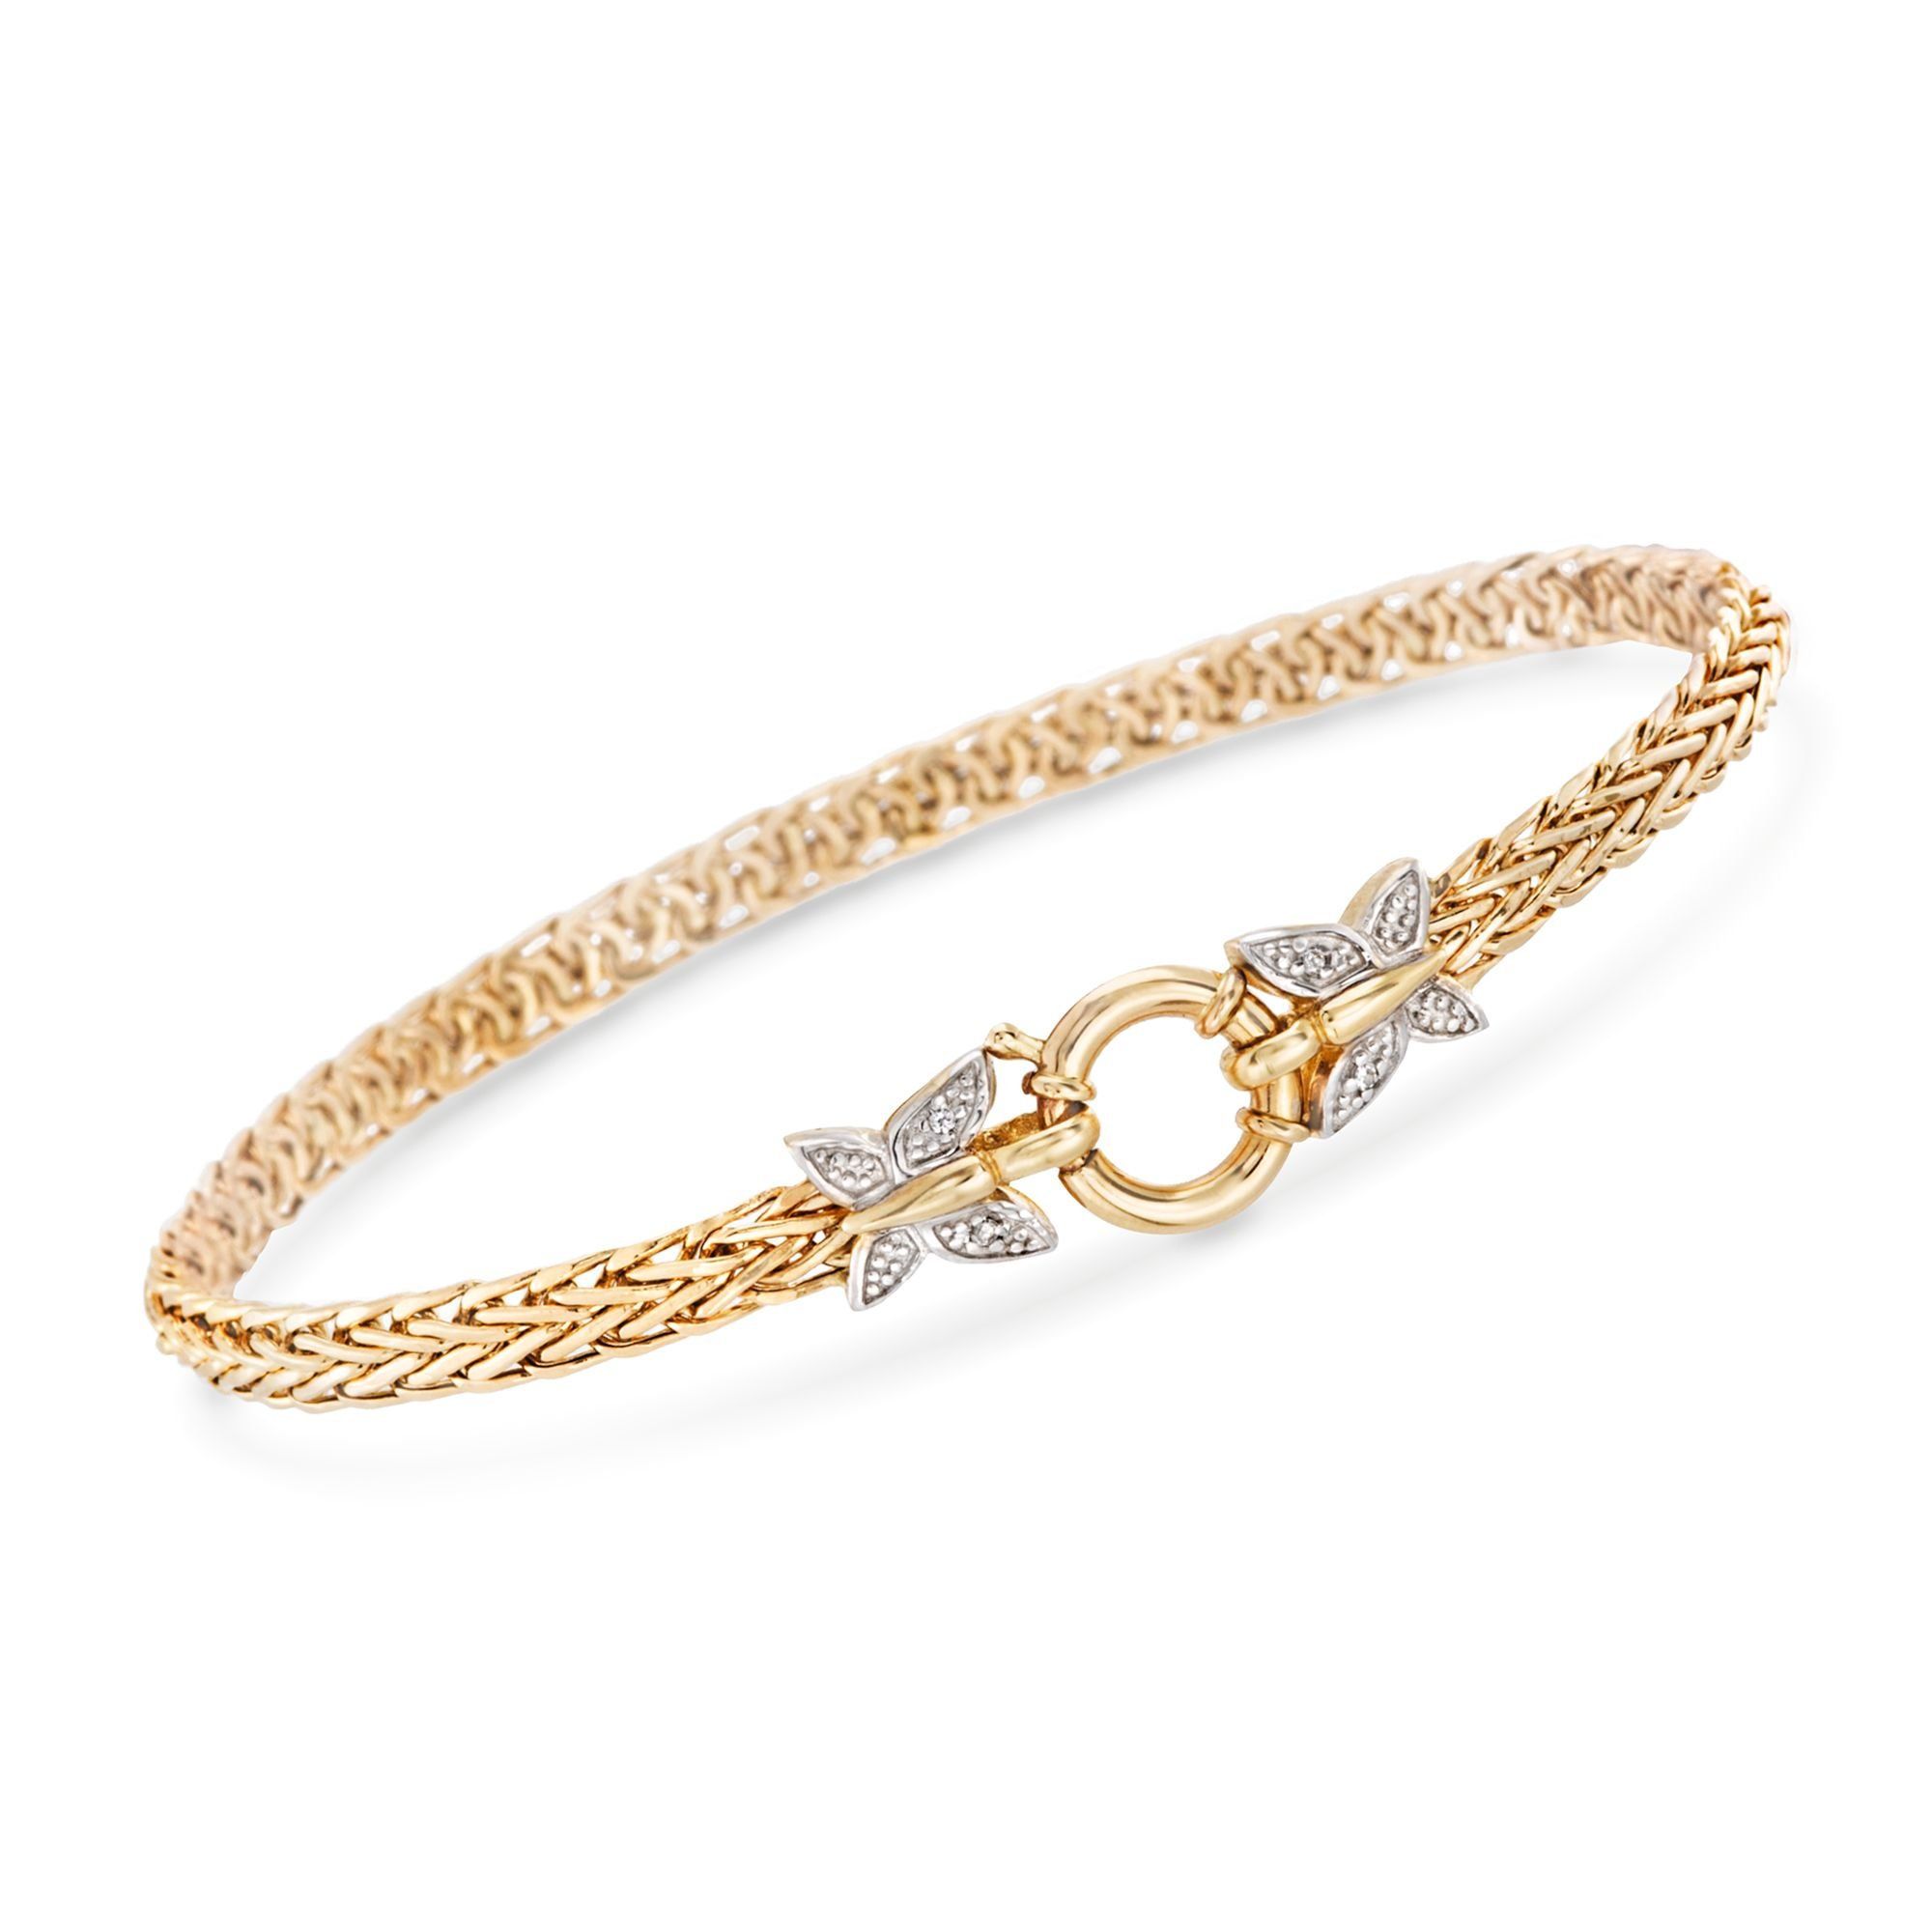 Ross-Simons 14kt Yellow Gold Butterfly Wheat Link Bracelet With Diamond Accents